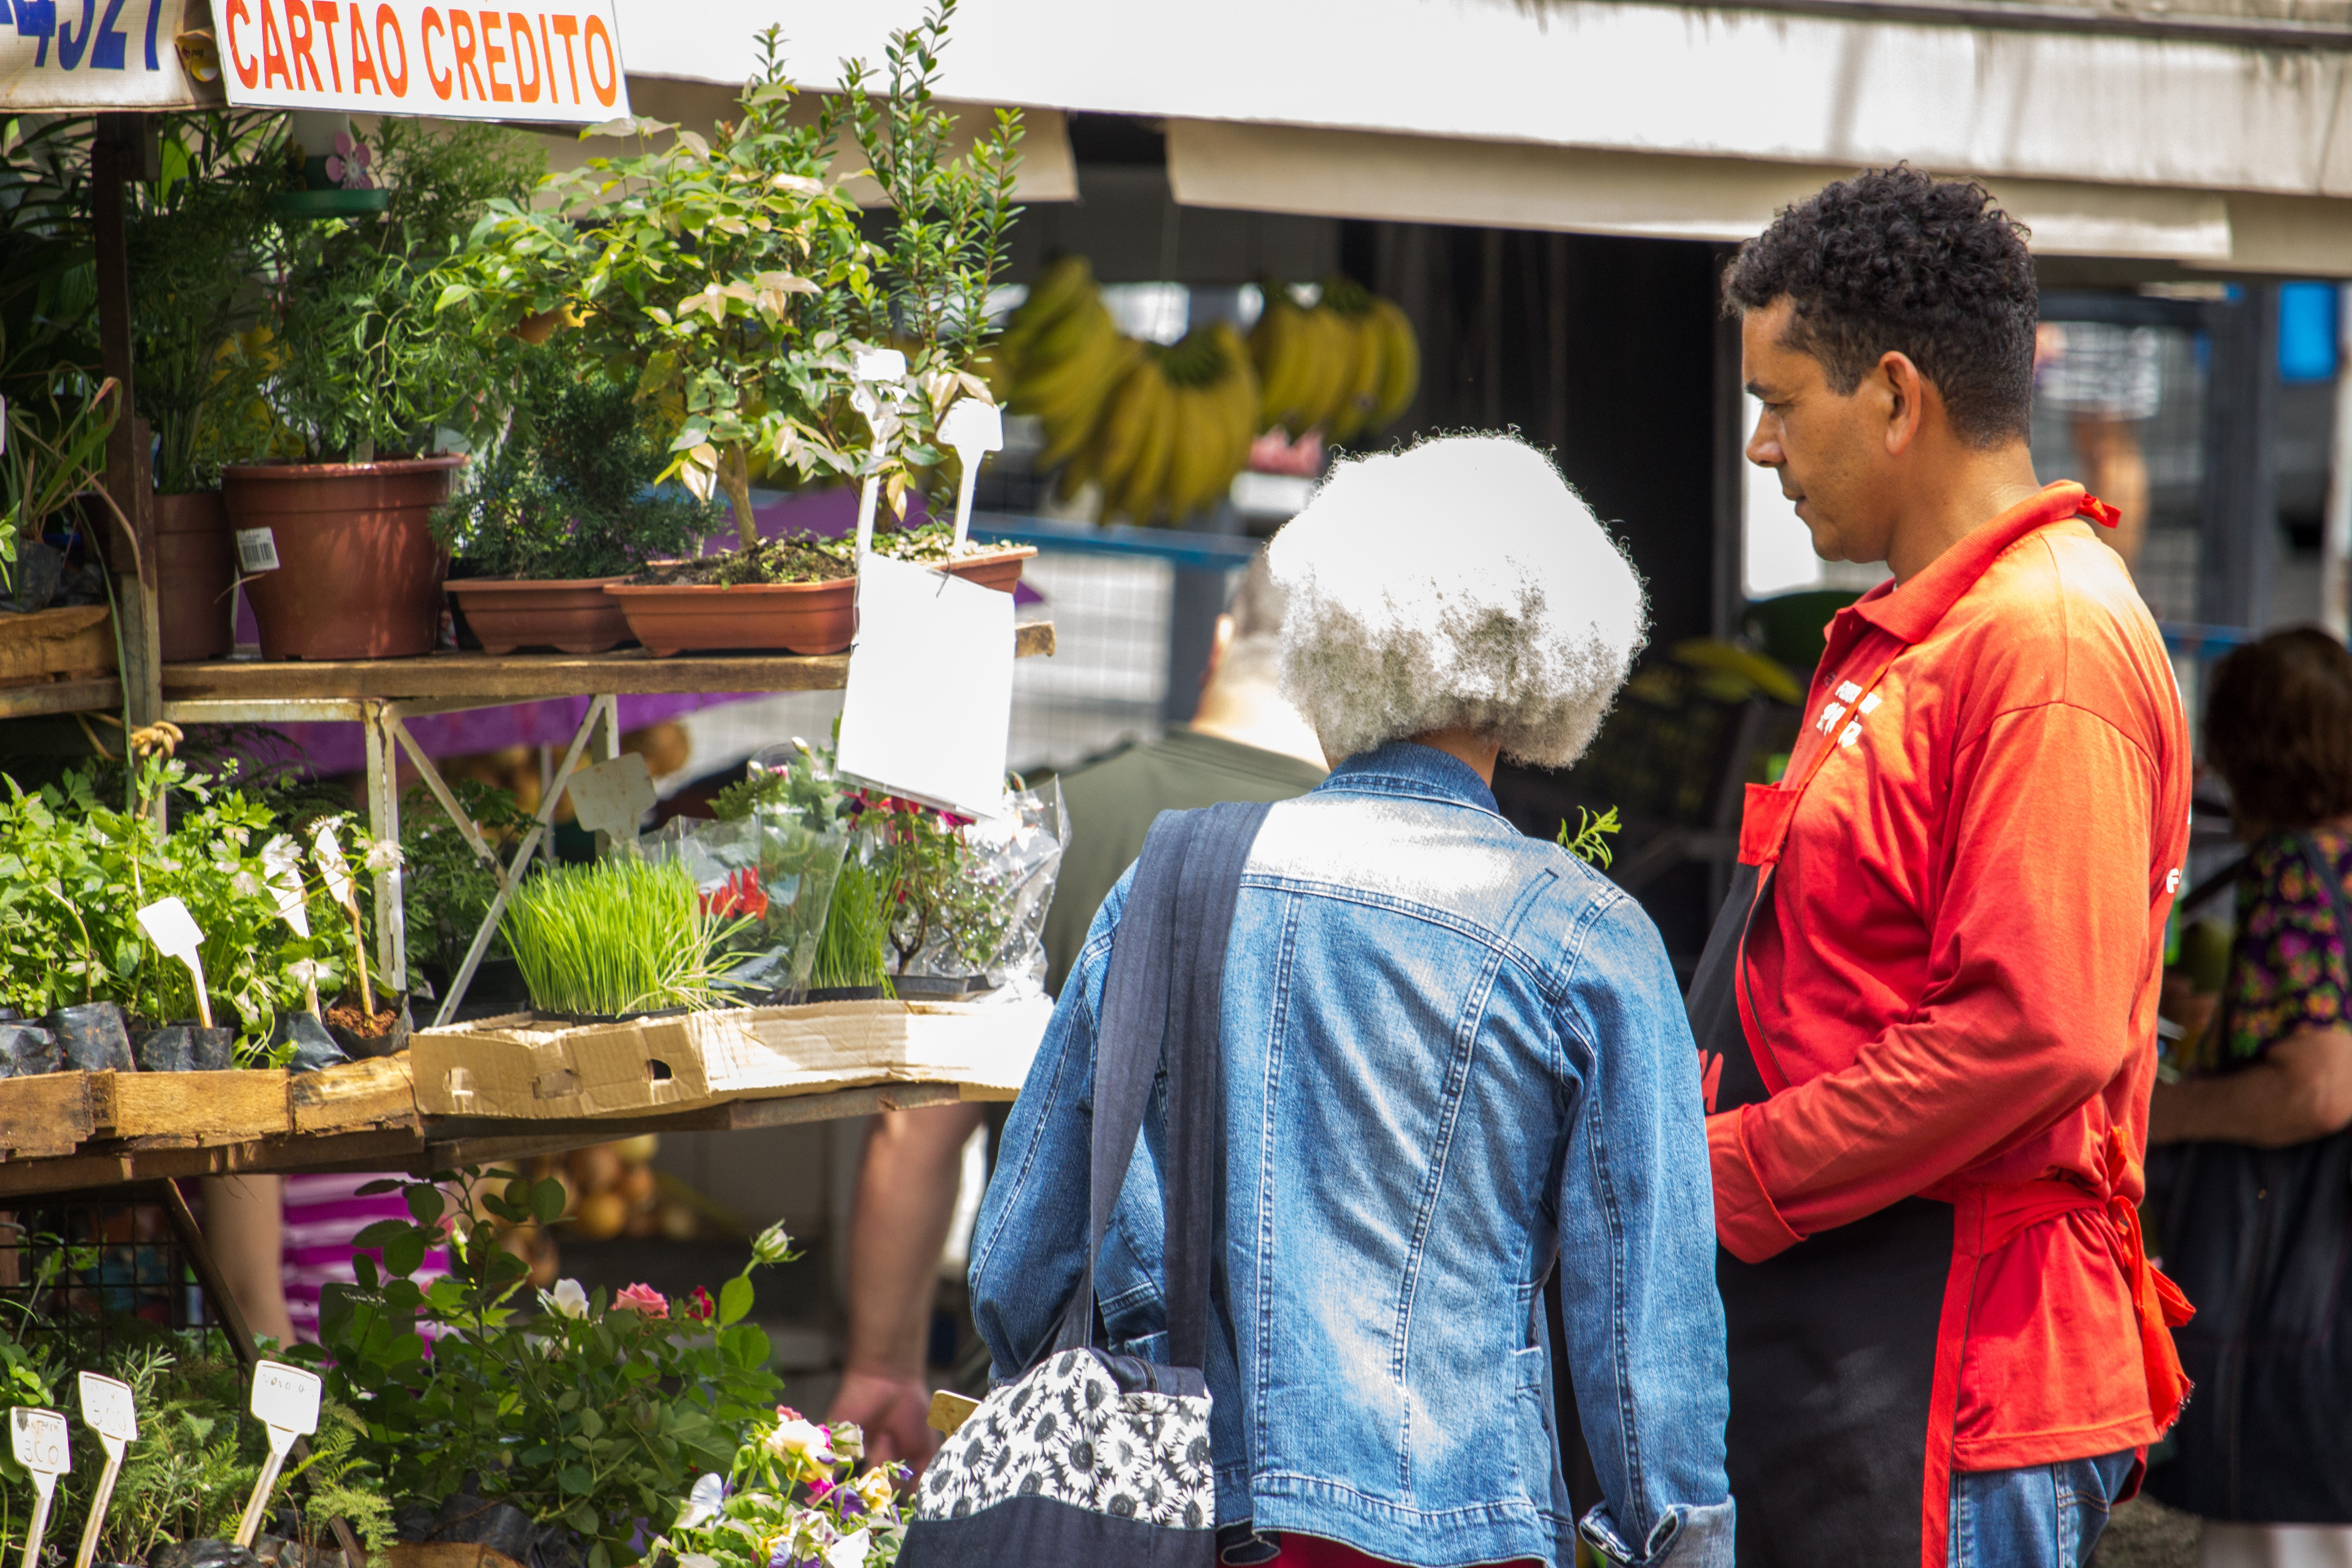 Business for sale in spring